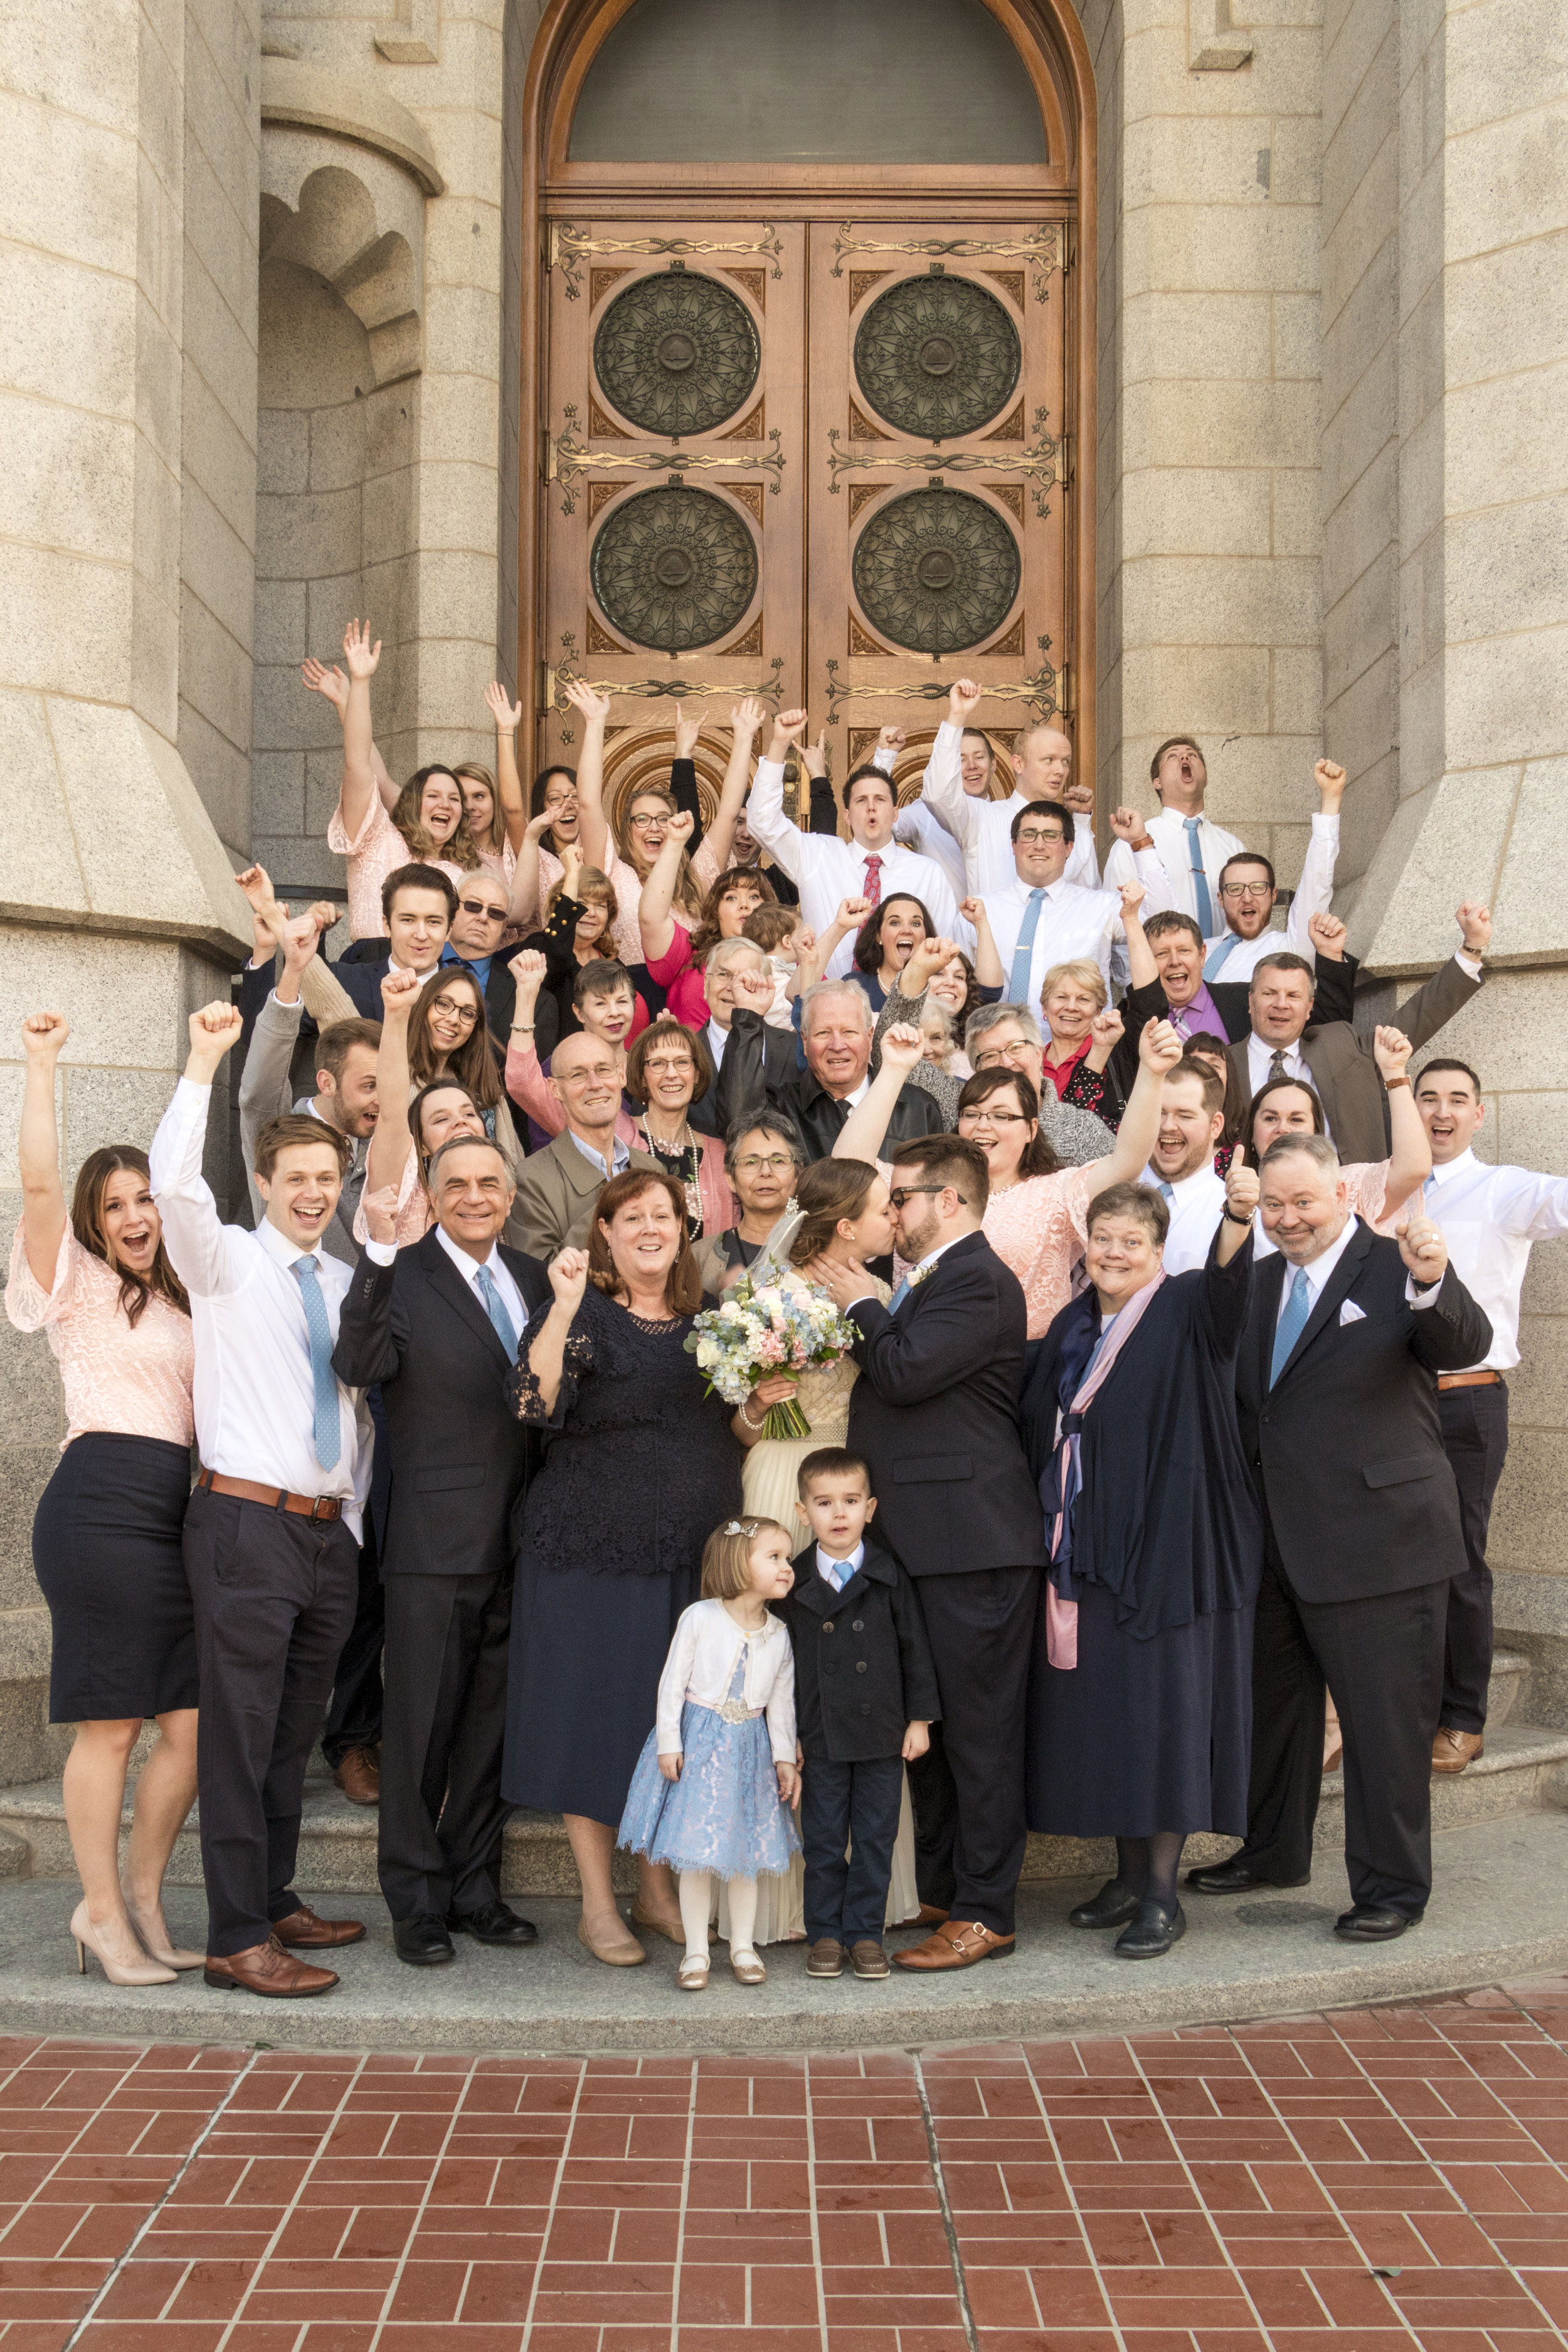 Utah Spring Wedding at the Salt Lake City Temple by Bri Bergman Photography03.JPG